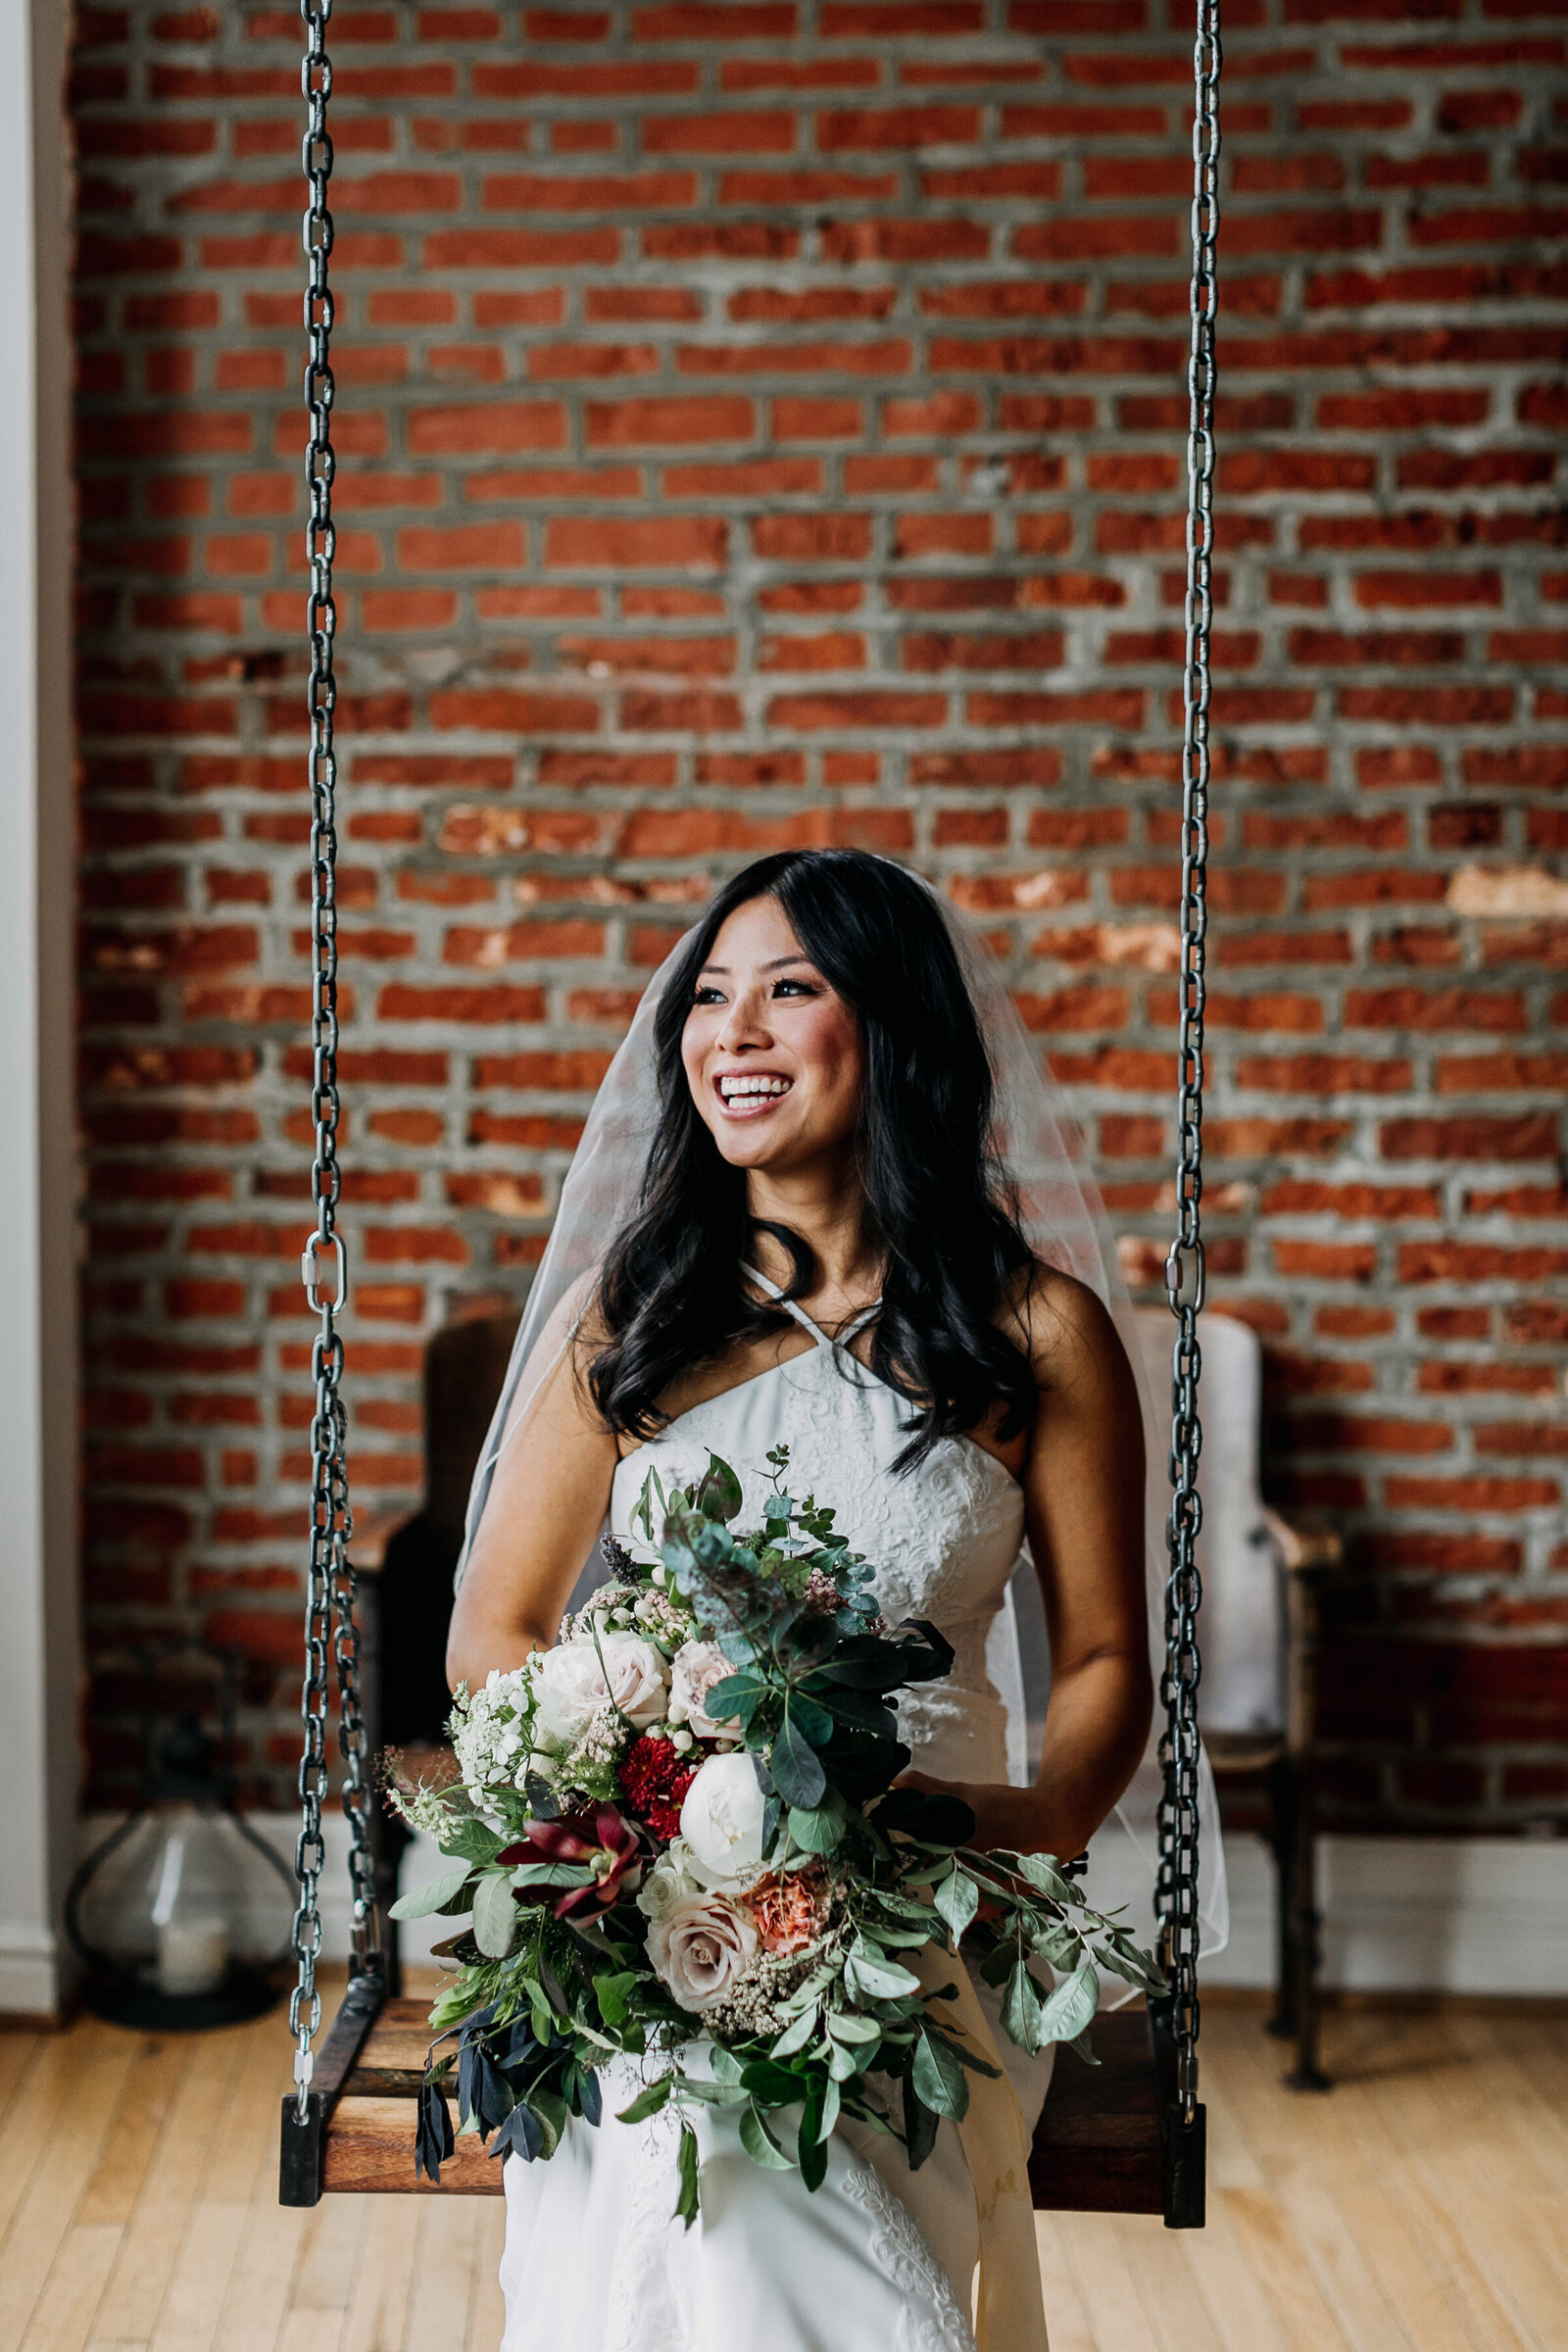 bride with bouquet sitting on swing with brick wall